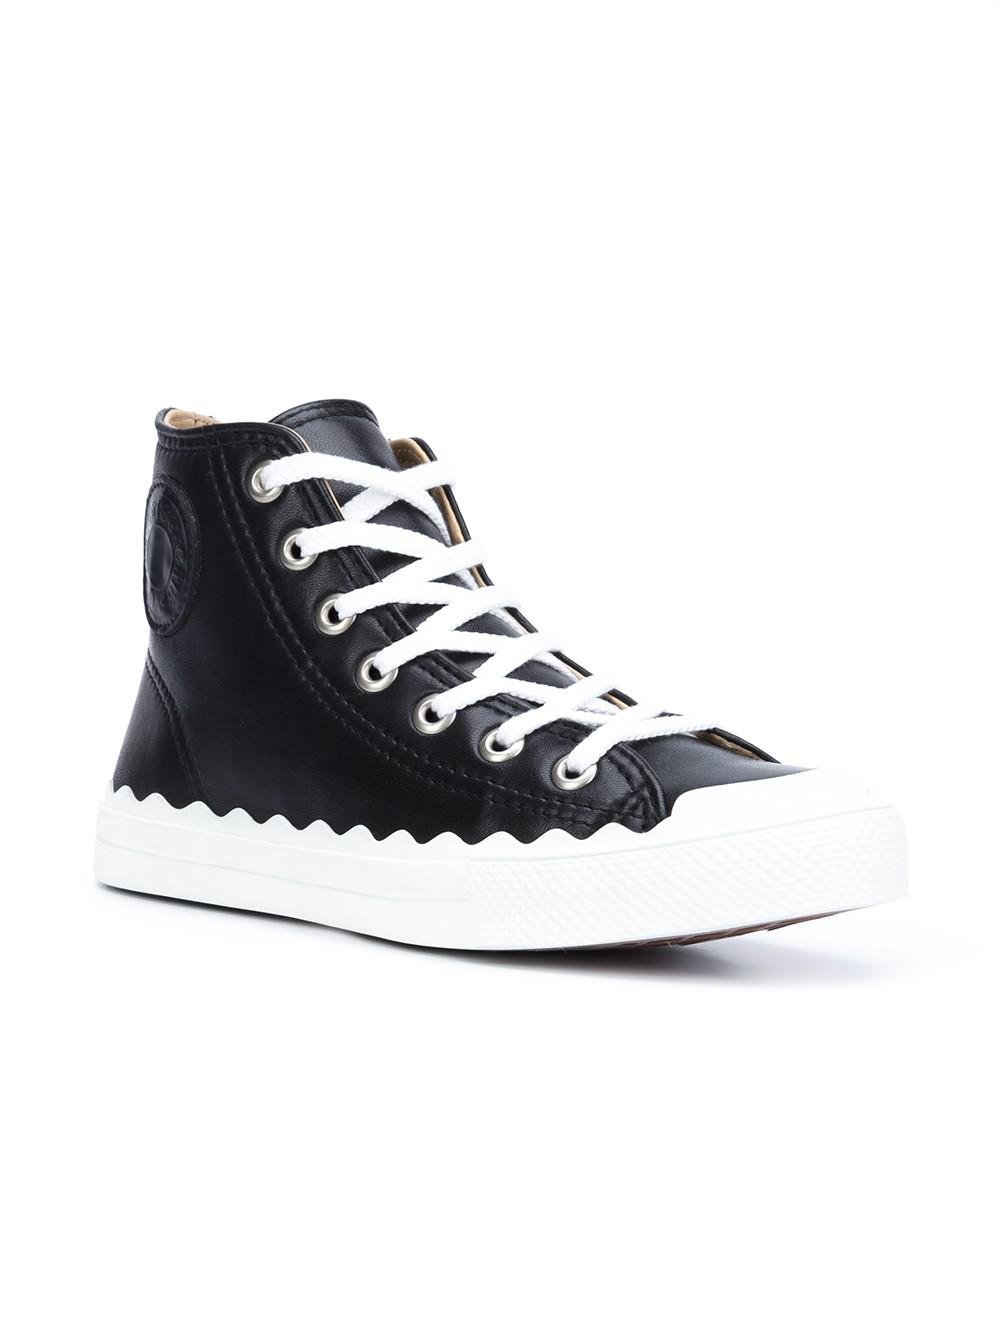 Chlo 233 Kyle Leather Sneakers In Blue For Men Lyst